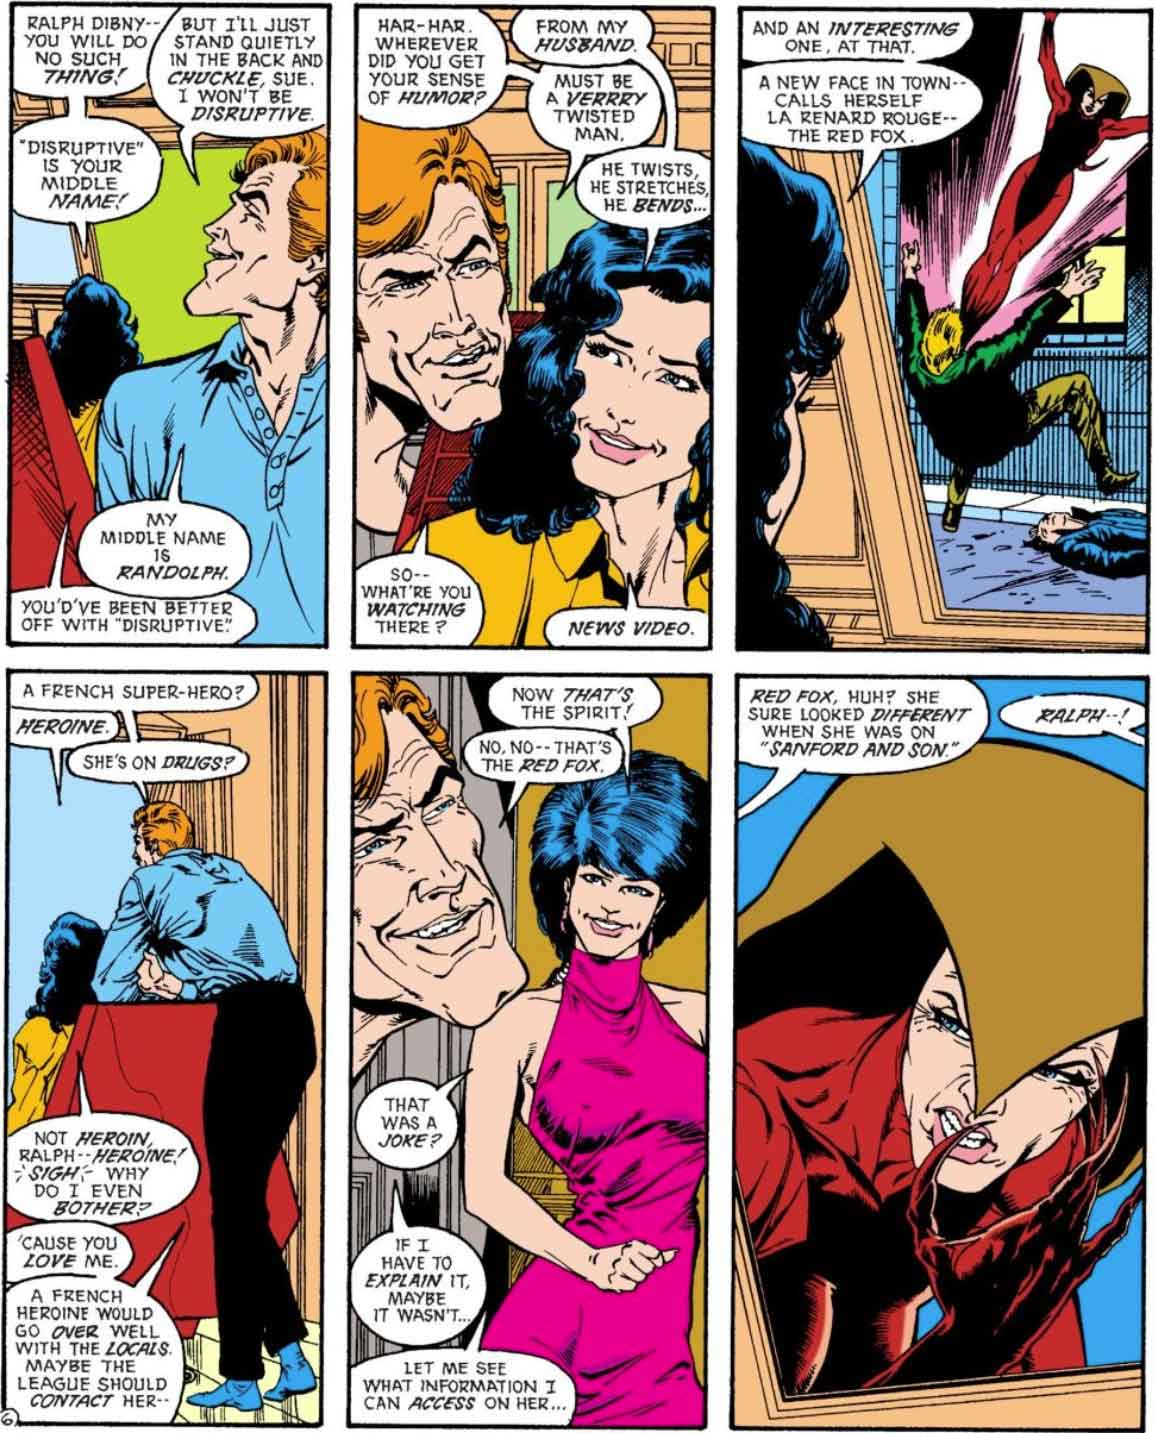 Justice League Europe #6 by Keith Giffen, J.M. DeMatteis, Bart Sears and Pablo Marcos